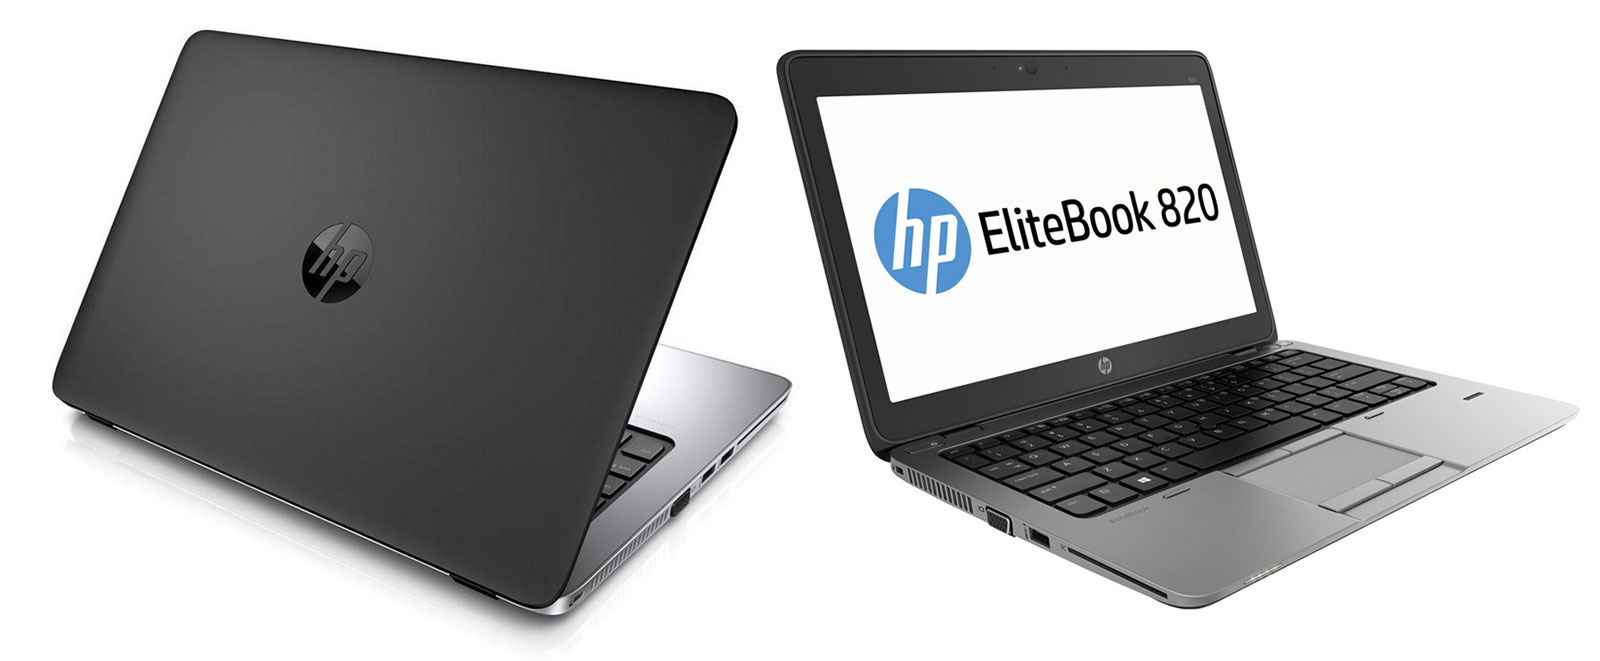 Notebook samsung 10 inch - The Elitebook 820 Can Be The Ideal 12 Incher For Those Who Appreciate The Bare